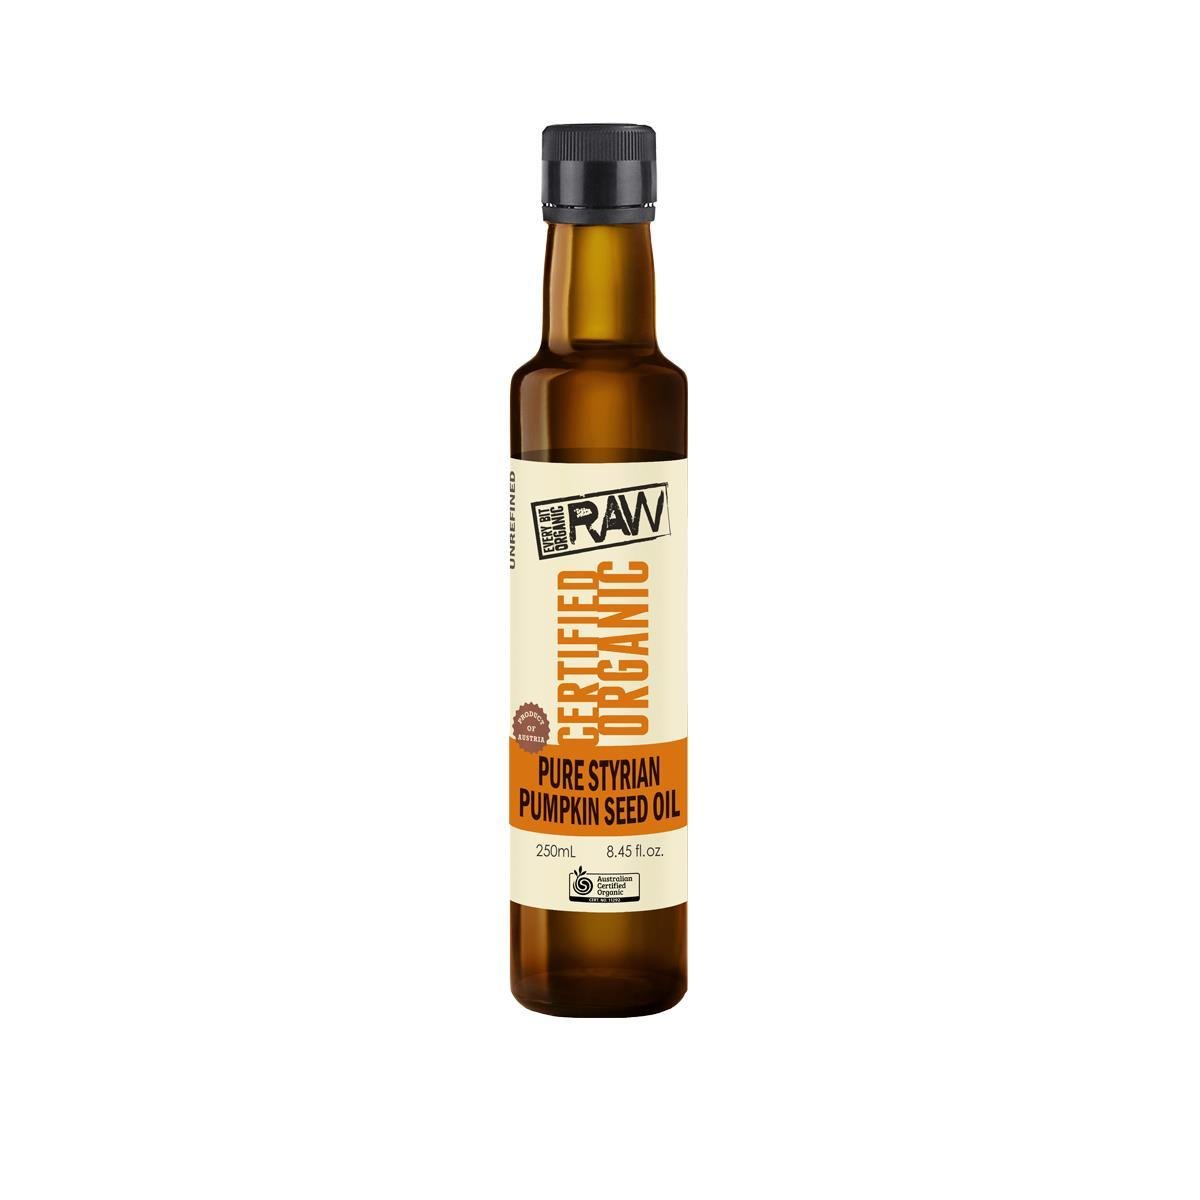 Every Bit Organic Styrian Pumpkin Seed Oil (250ml)